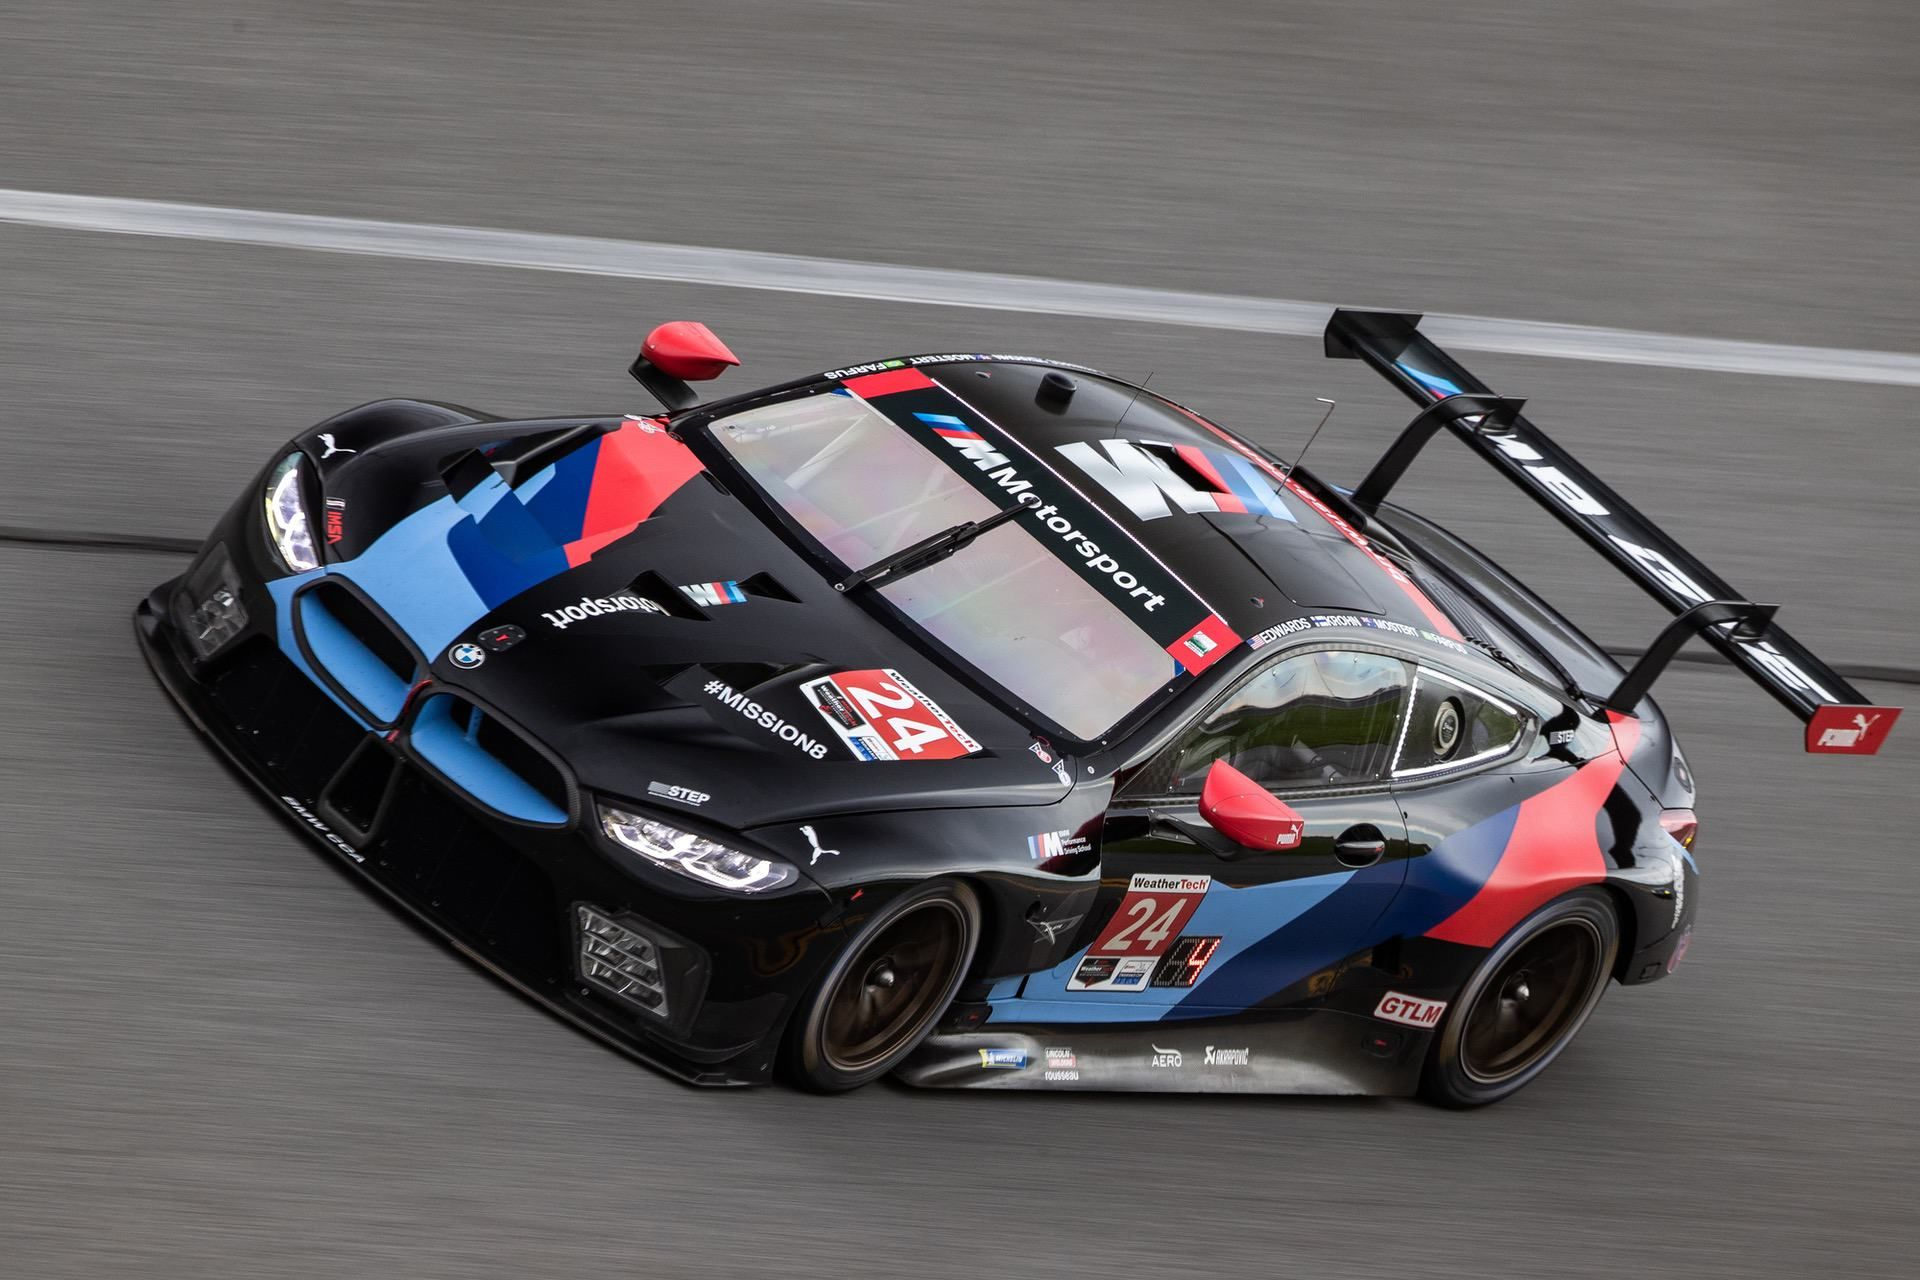 Bmw M8 Gte Wins The 2020 Daytona 24 Hours Ahead Of The Porsche In